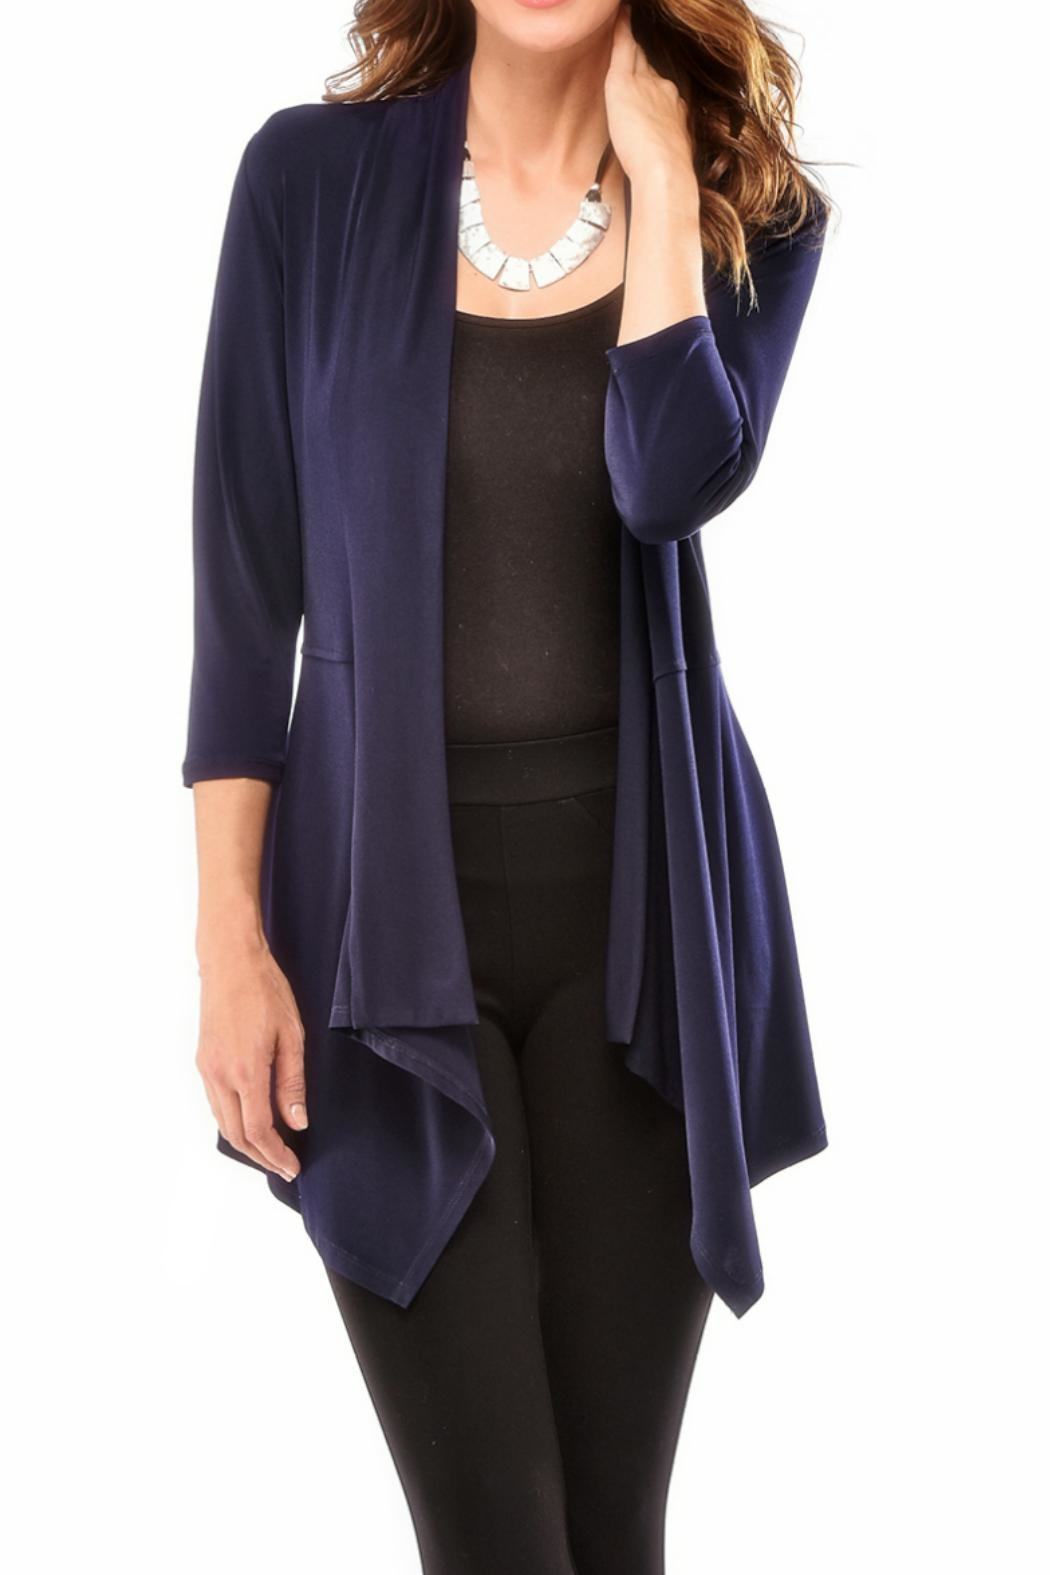 Charlie Paige Slimming Cardigan Sweater - Main Image